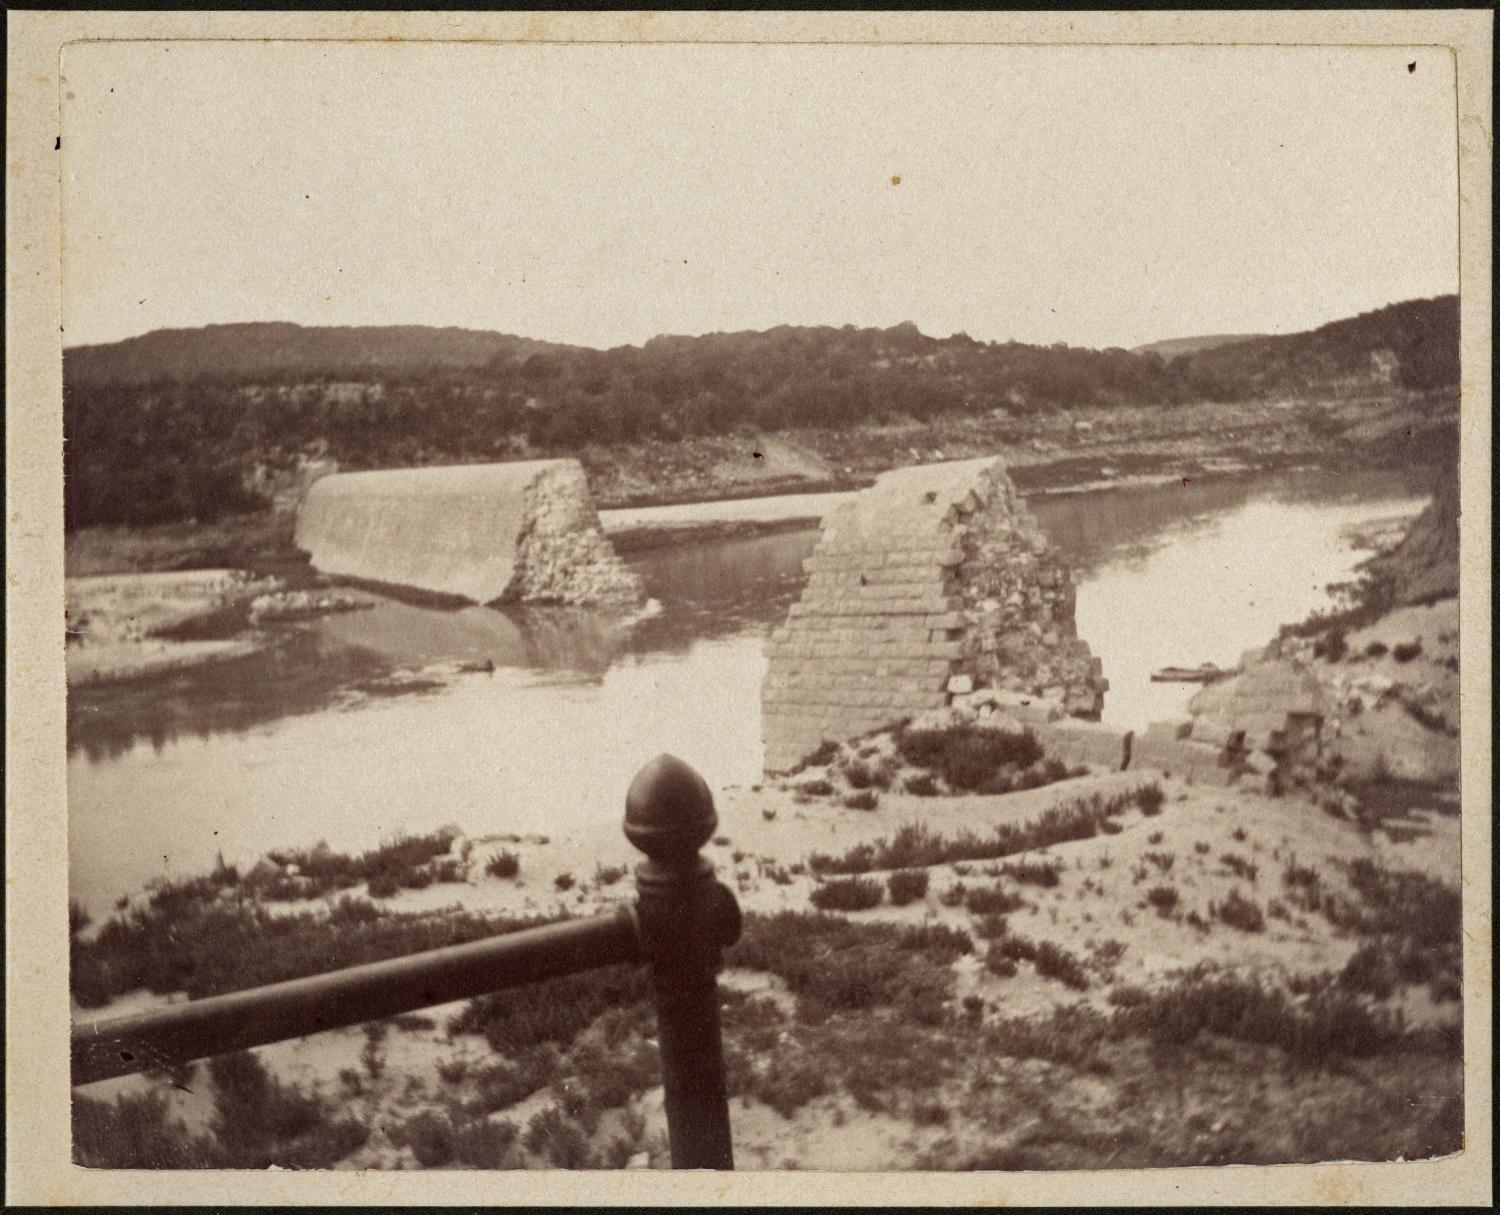 The first Austin Dam after being destroyed in a flood in 1900.